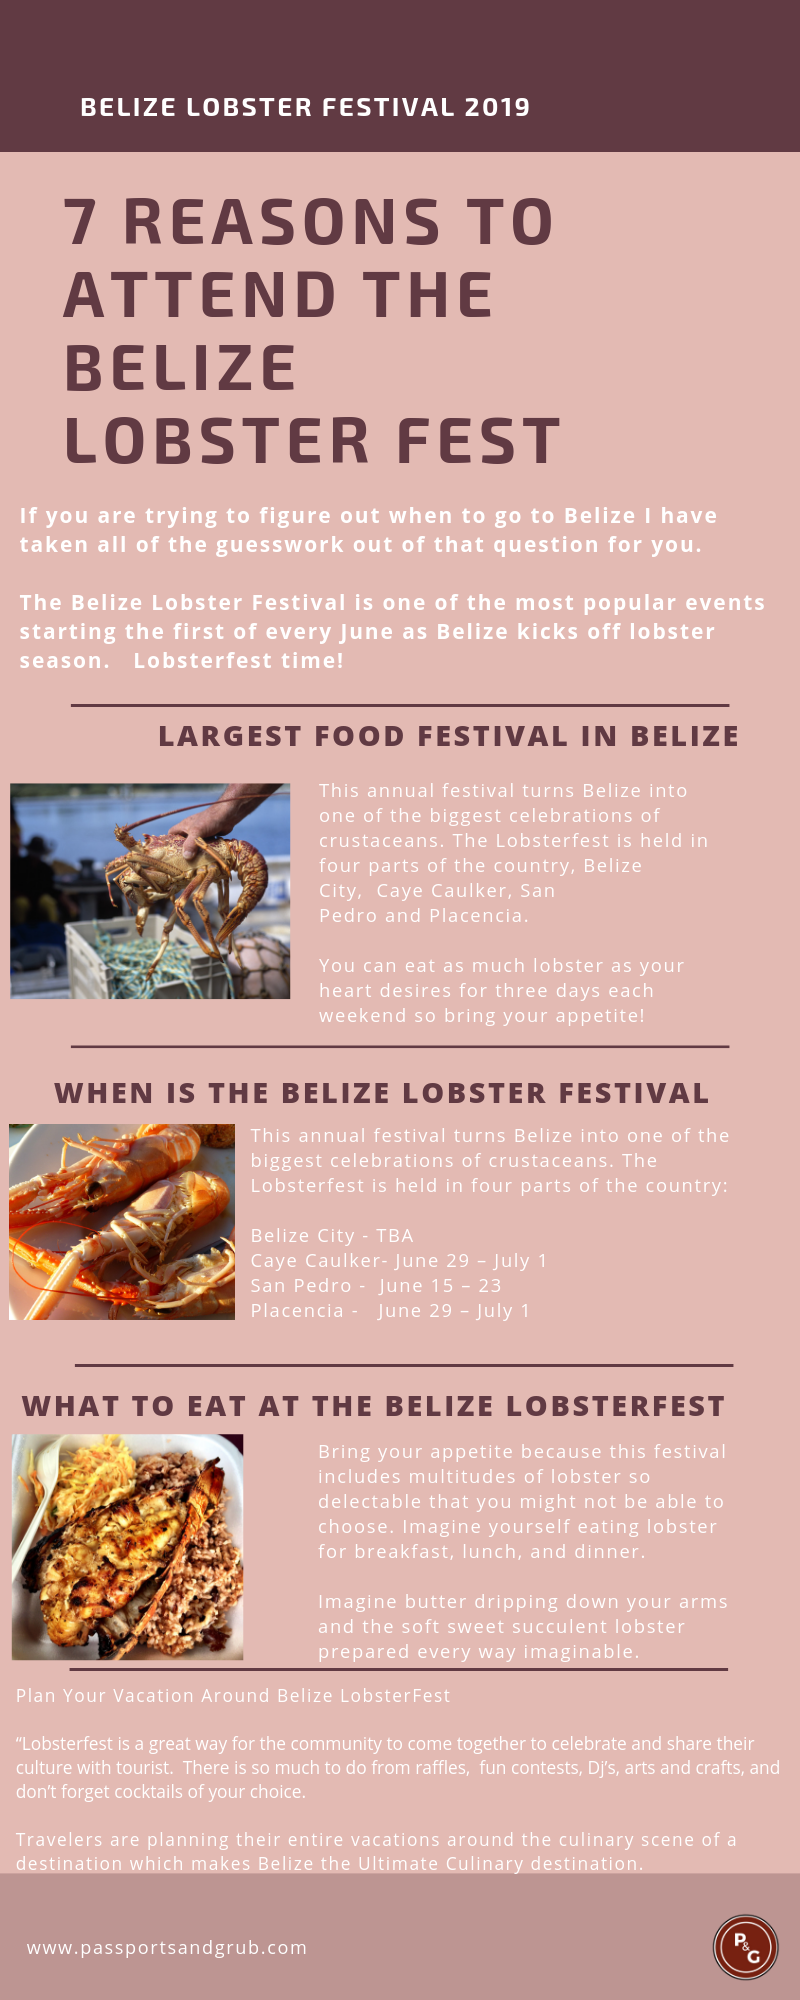 Belize lobsterfest